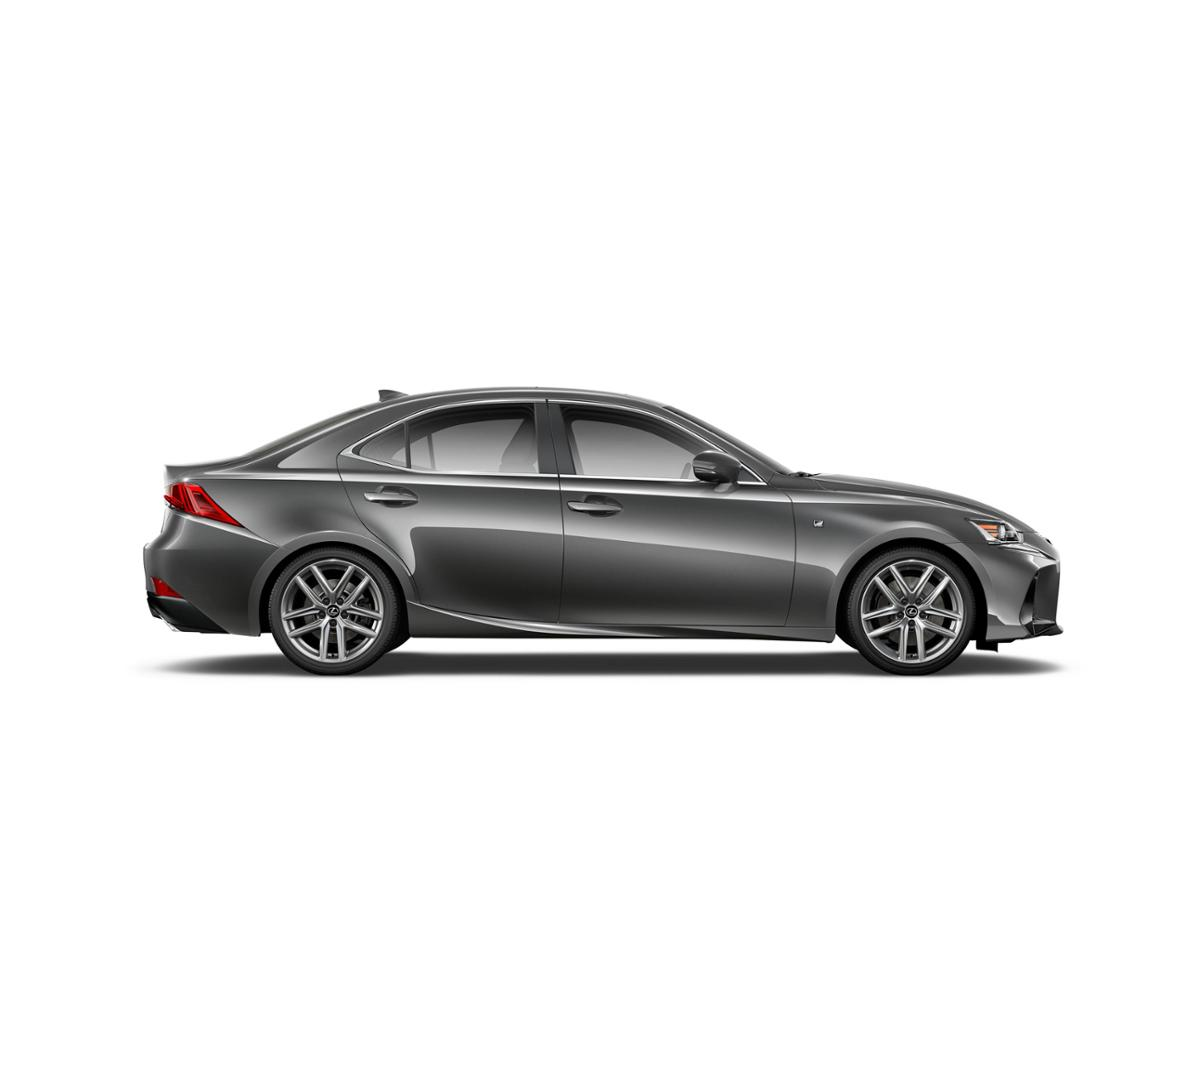 New 2019 Lexus IS 300 For Sale In Farmingdale, NY